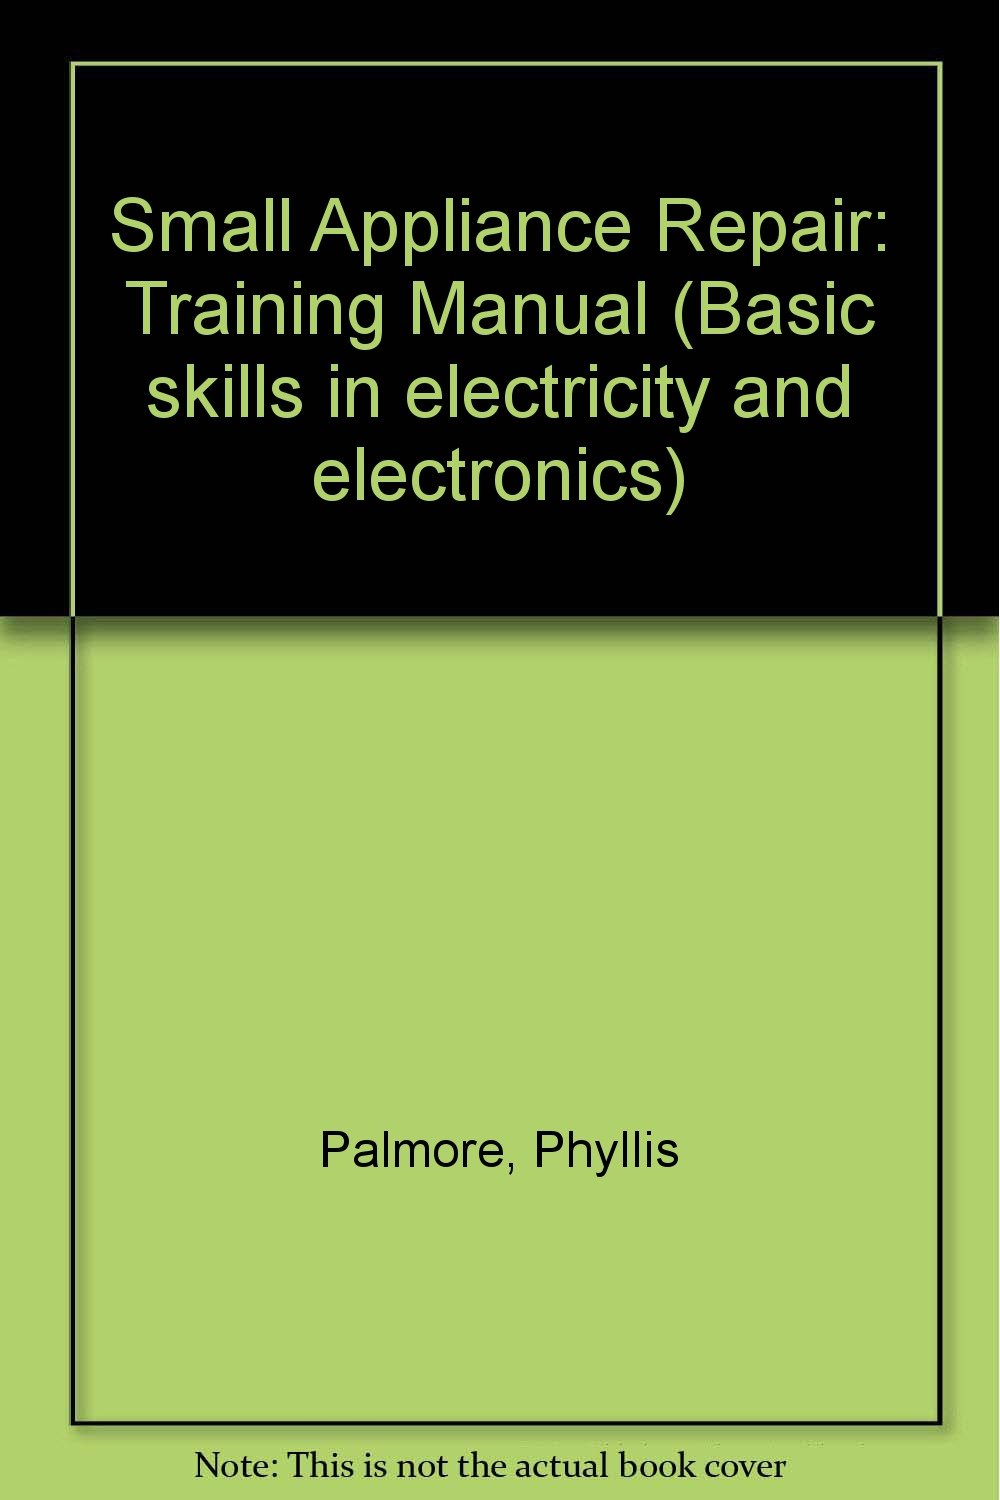 Small Appliance Repair Training Manual Basic Skills In Electricity Maytag Schematic And Electronics Phyllis Palmore 9780070483637 Books